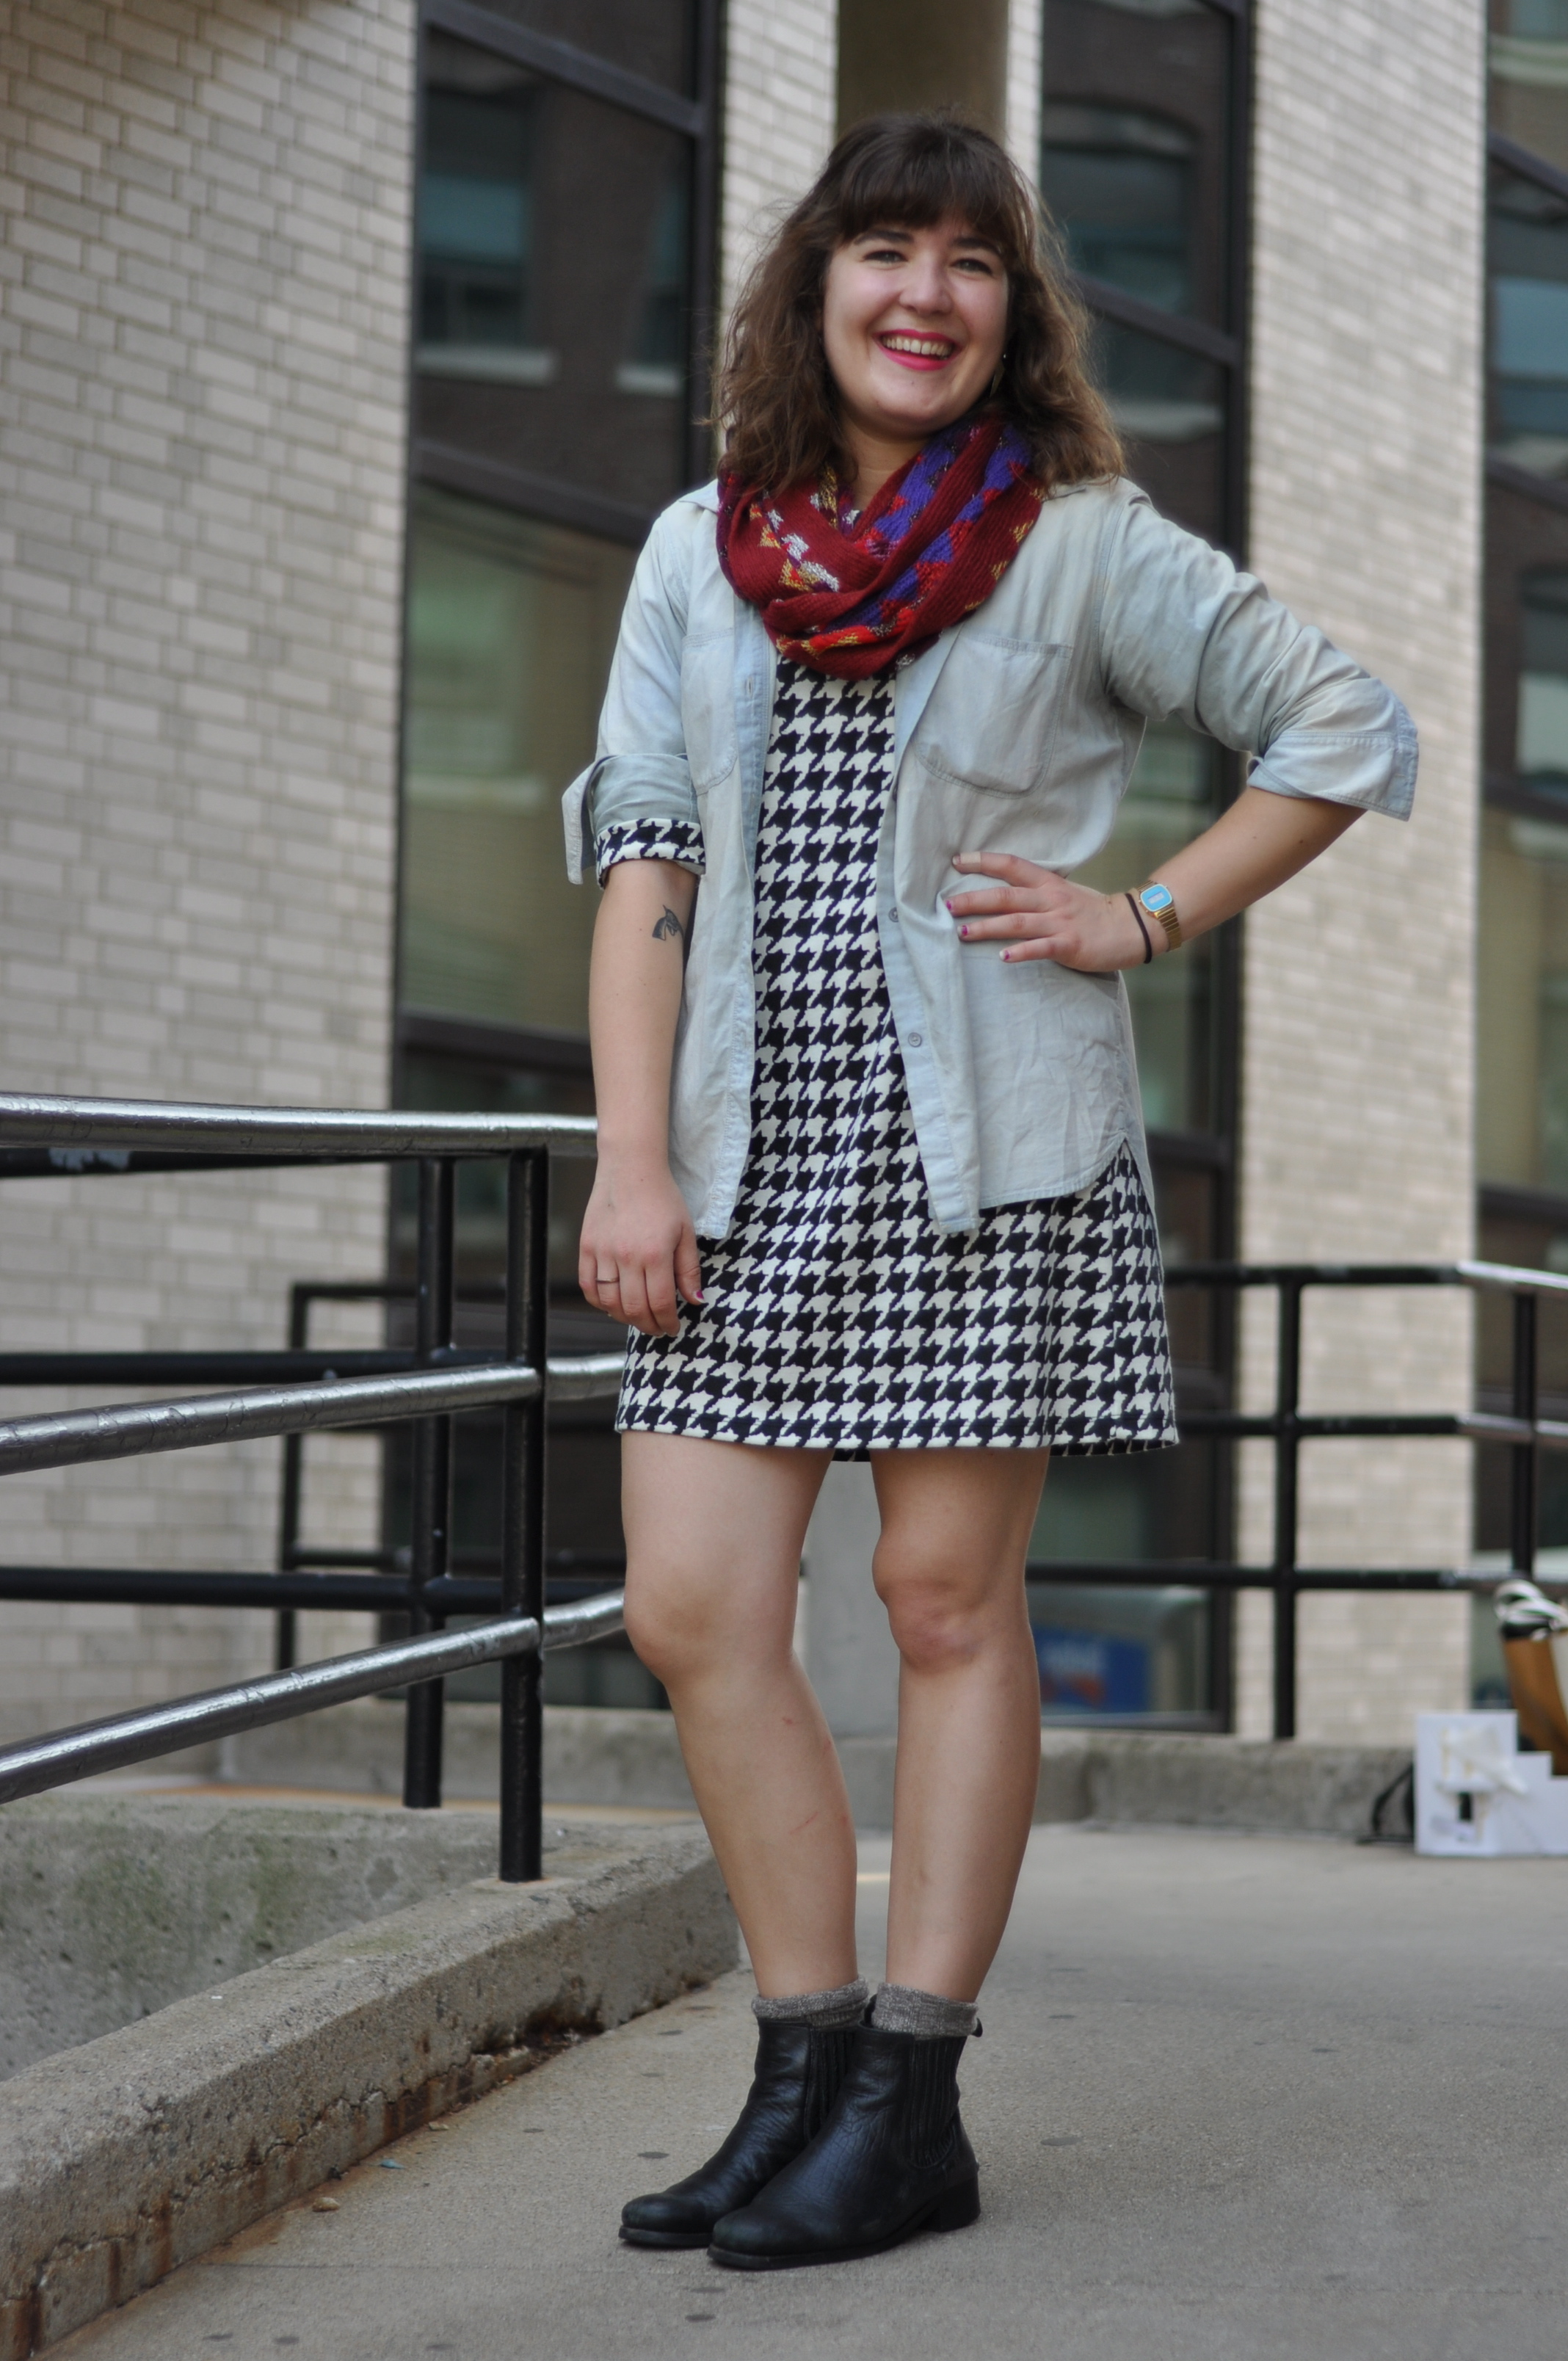 Sarah Darrow College Fashionista Name Sarah Darrow